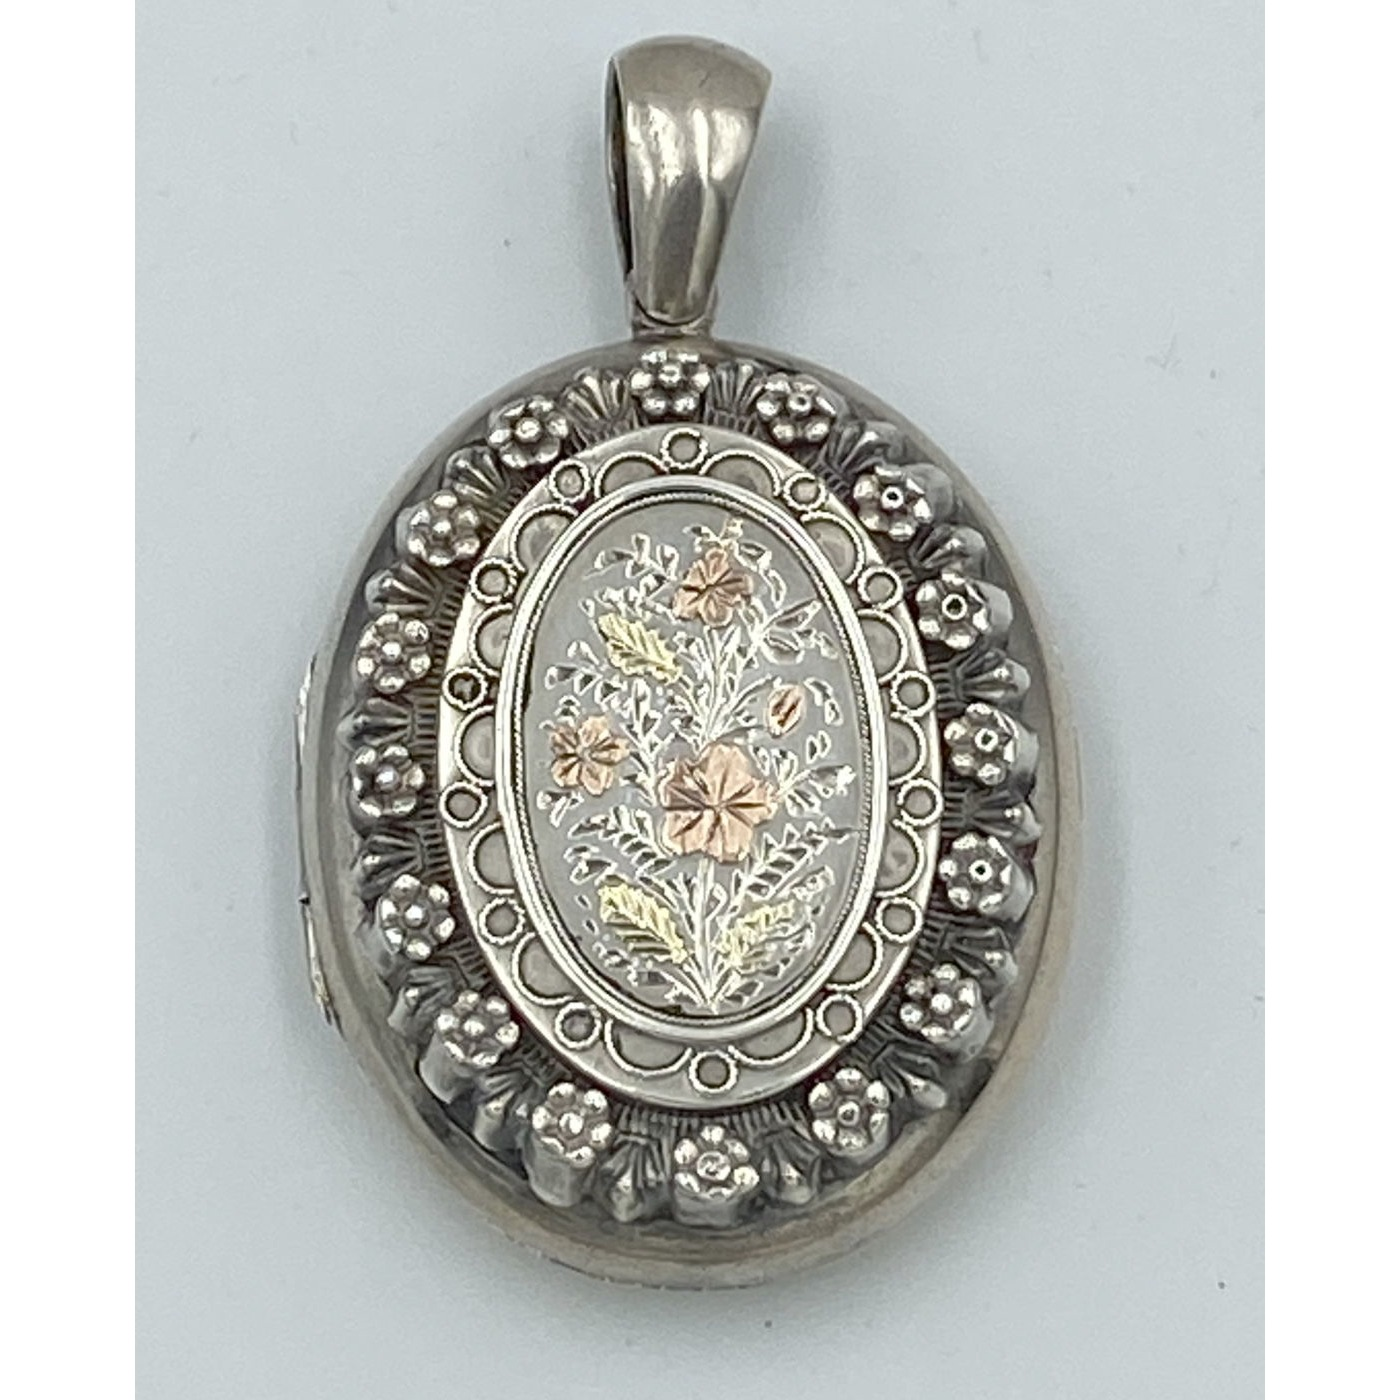 Highly Adorned Rose and Yellow Gold Applied Flowers Rosette Border Antique English Silver Locket